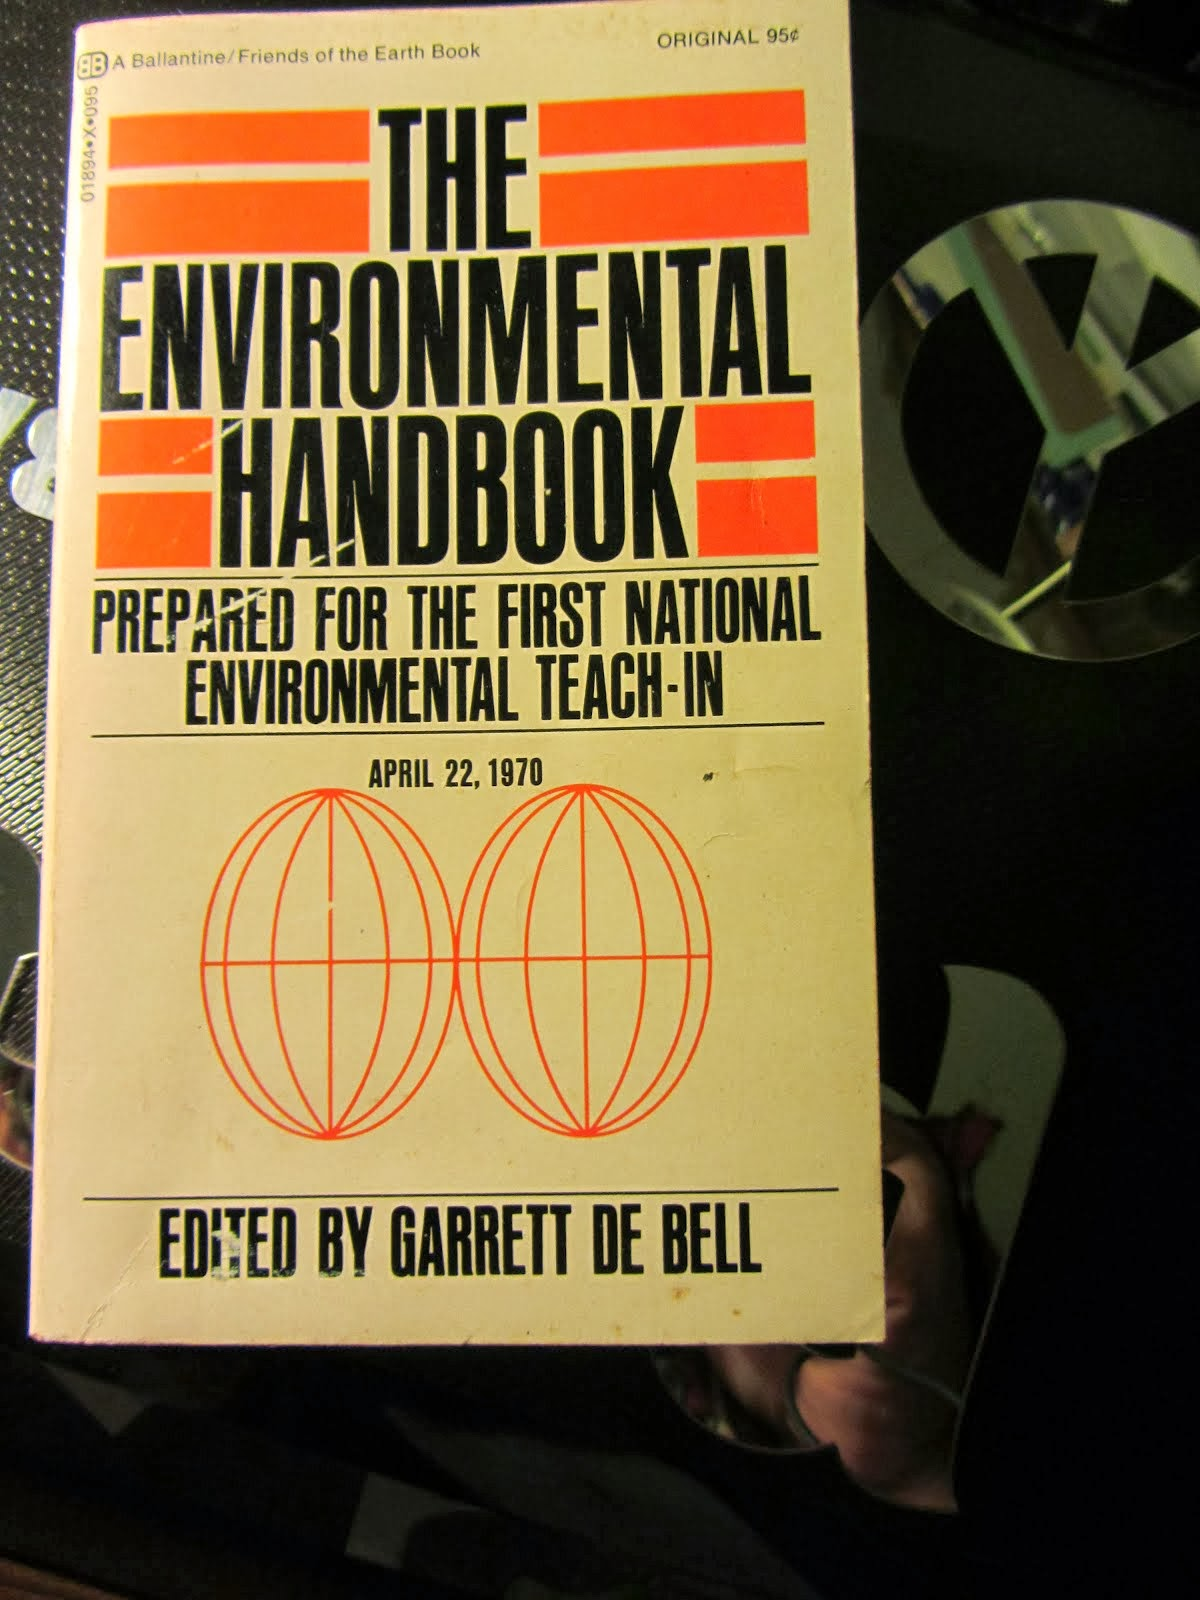 The first Earth Day Handbook